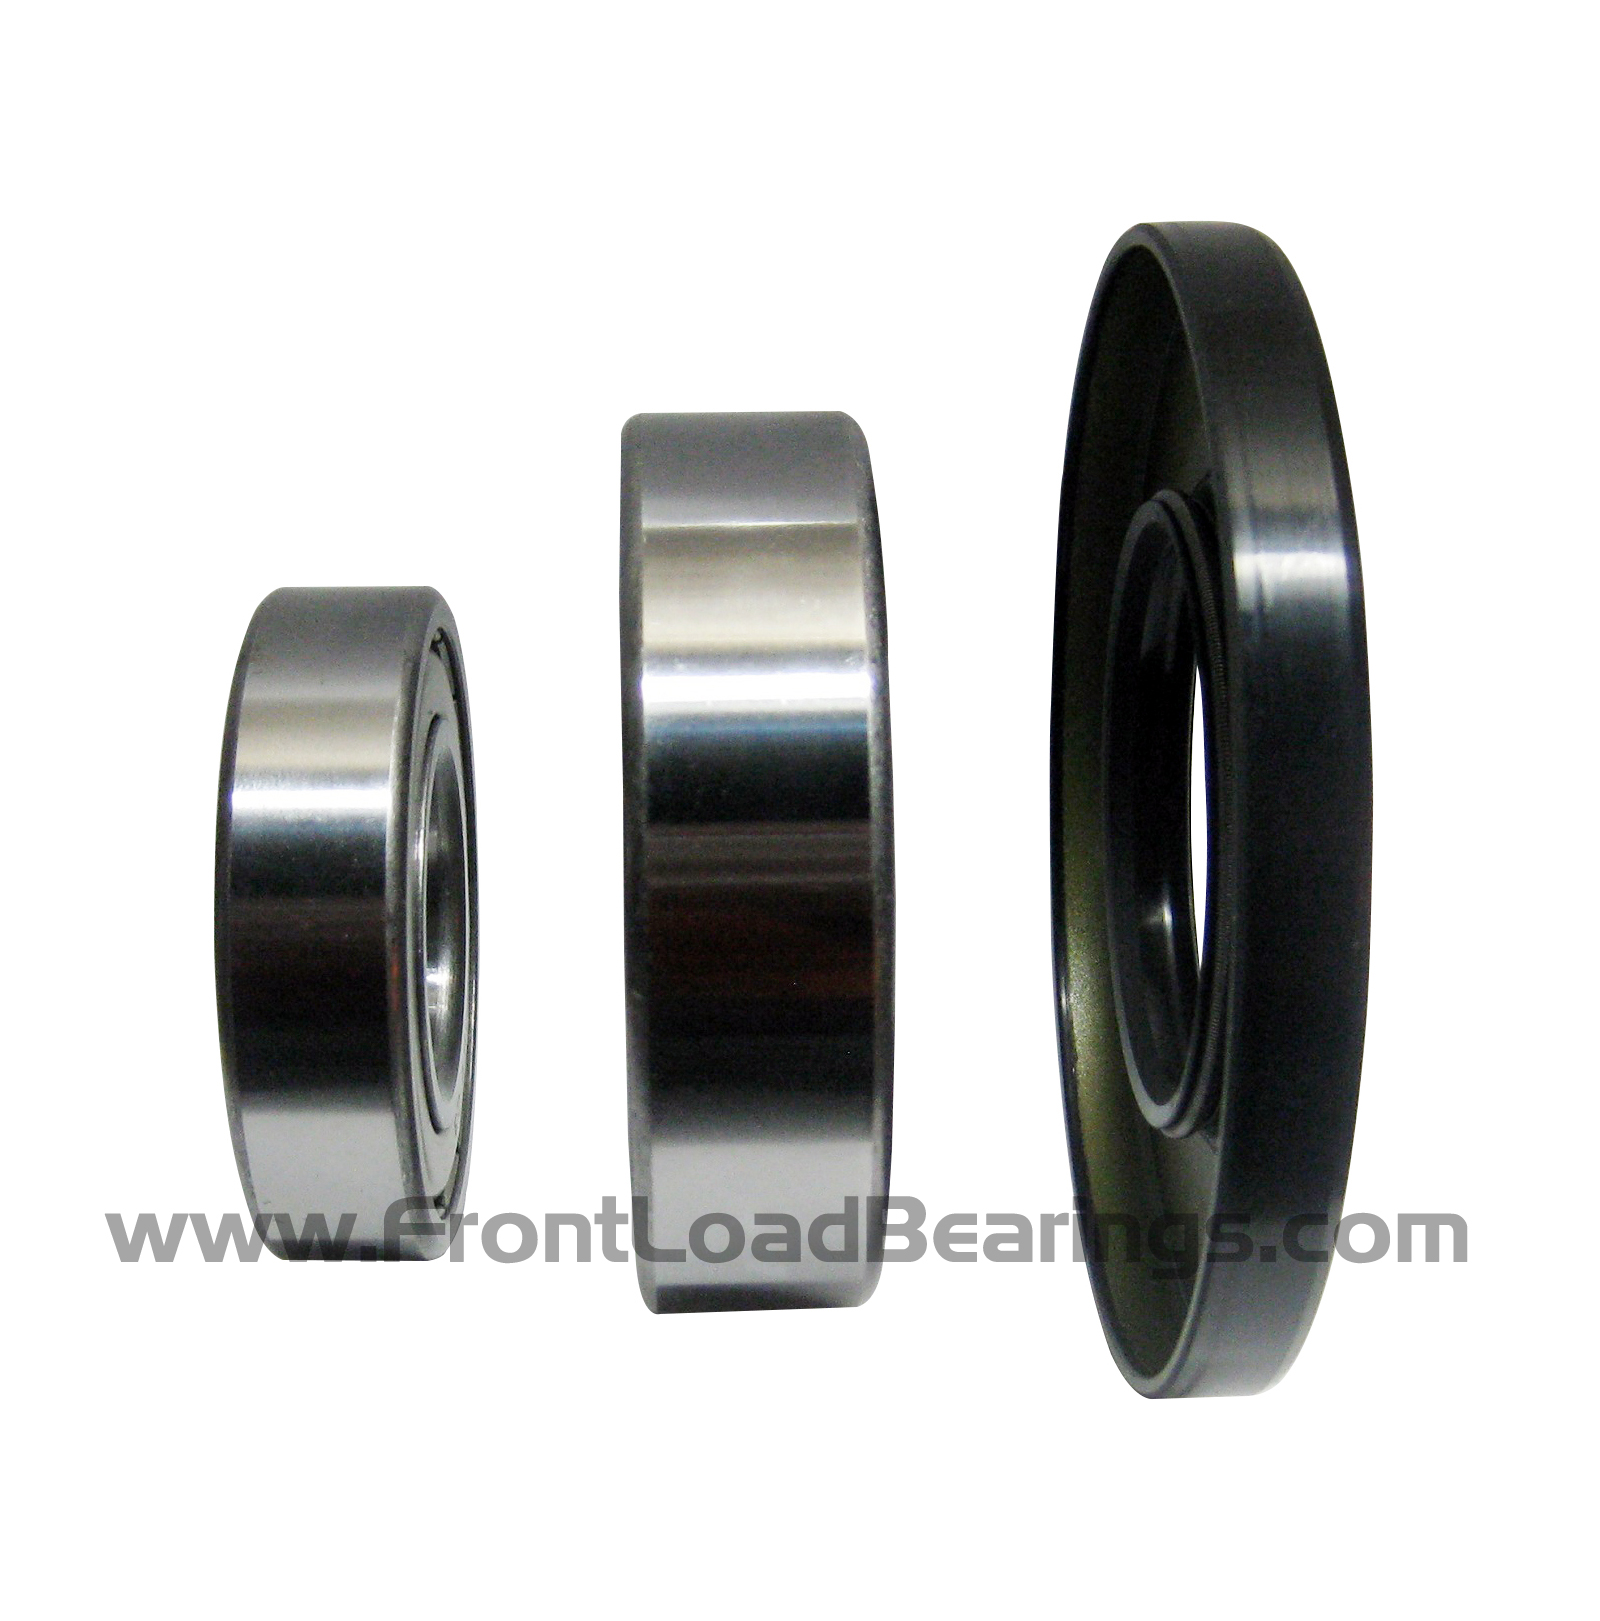 W10250764 High Quality Front Load Kenmore Washer Tub